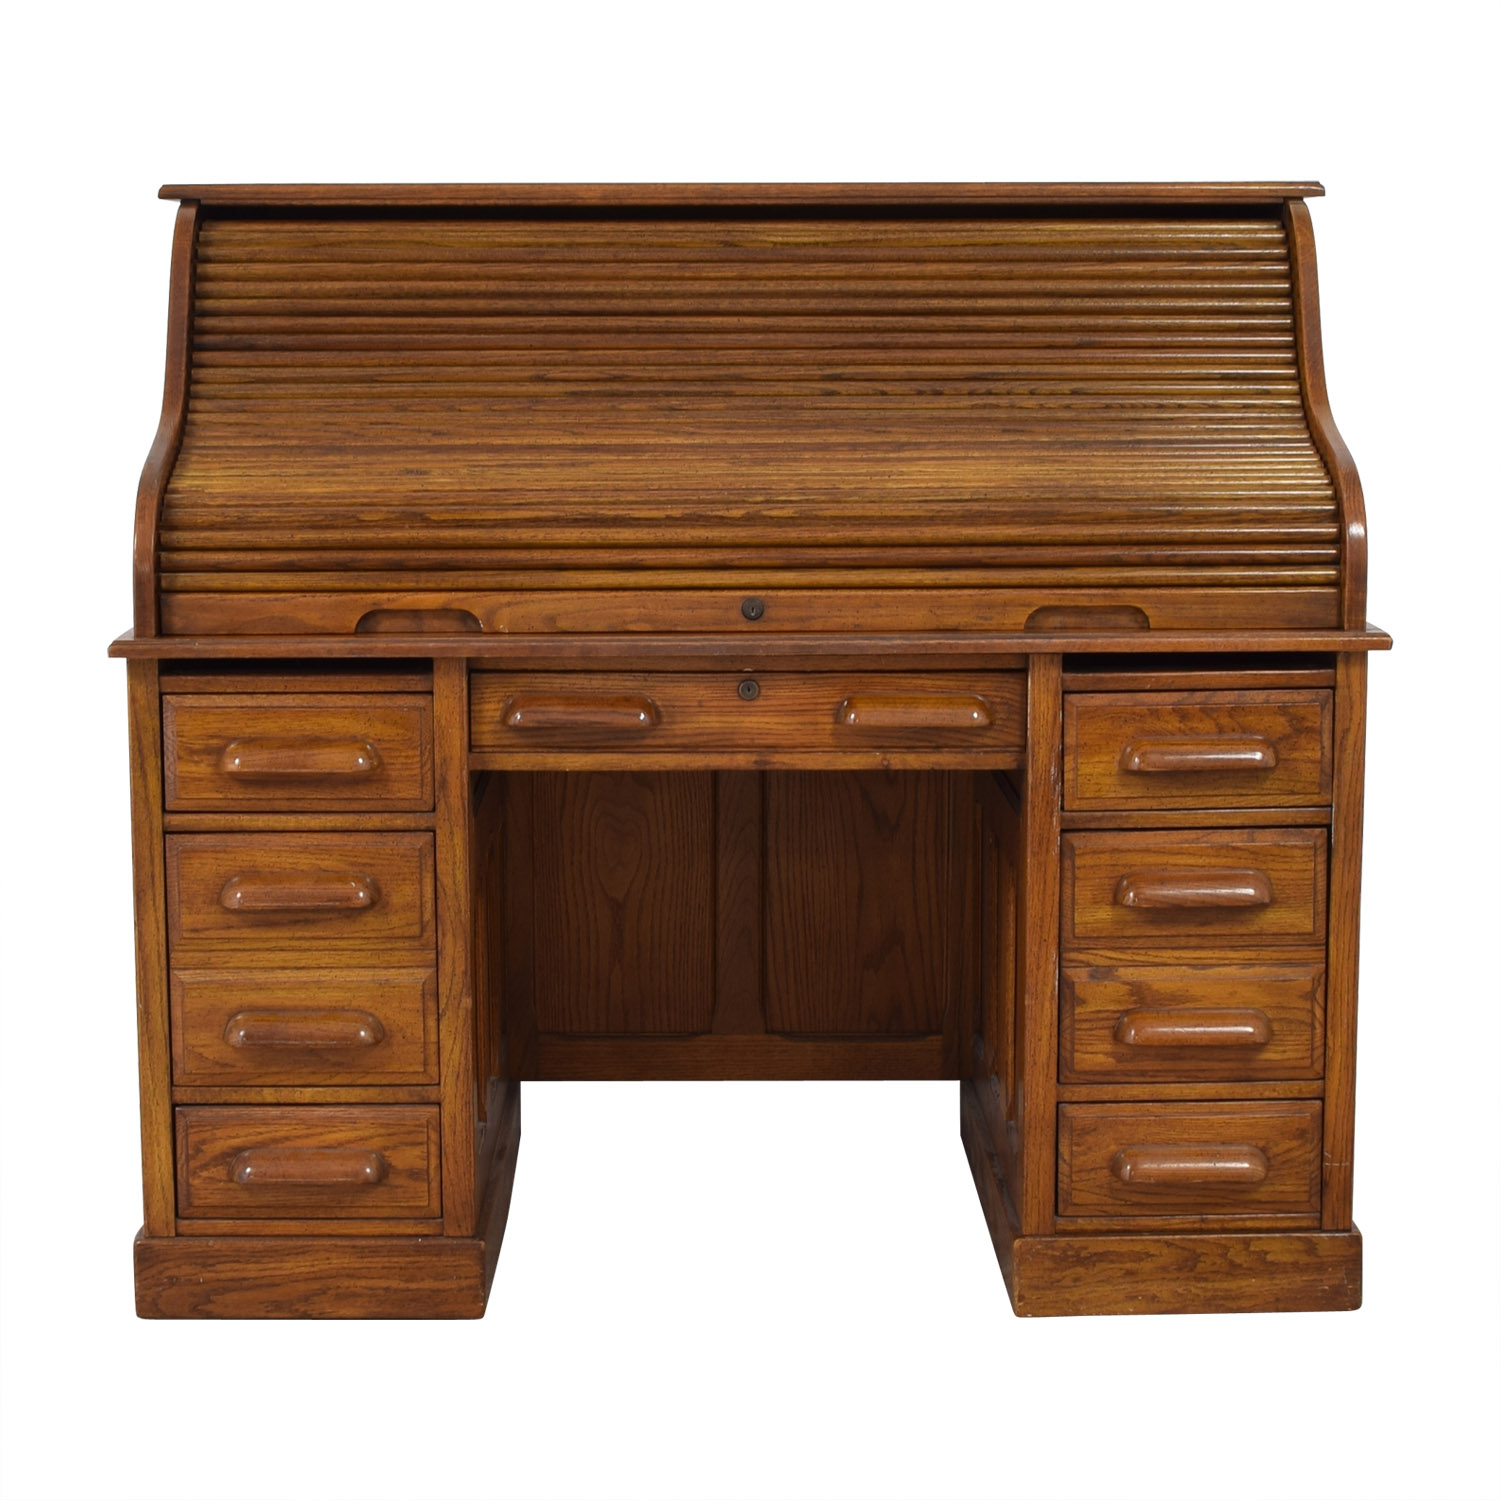 National Mt. Airy National Mt. Airy Vintage Oak Wood Roll Top Desk second hand